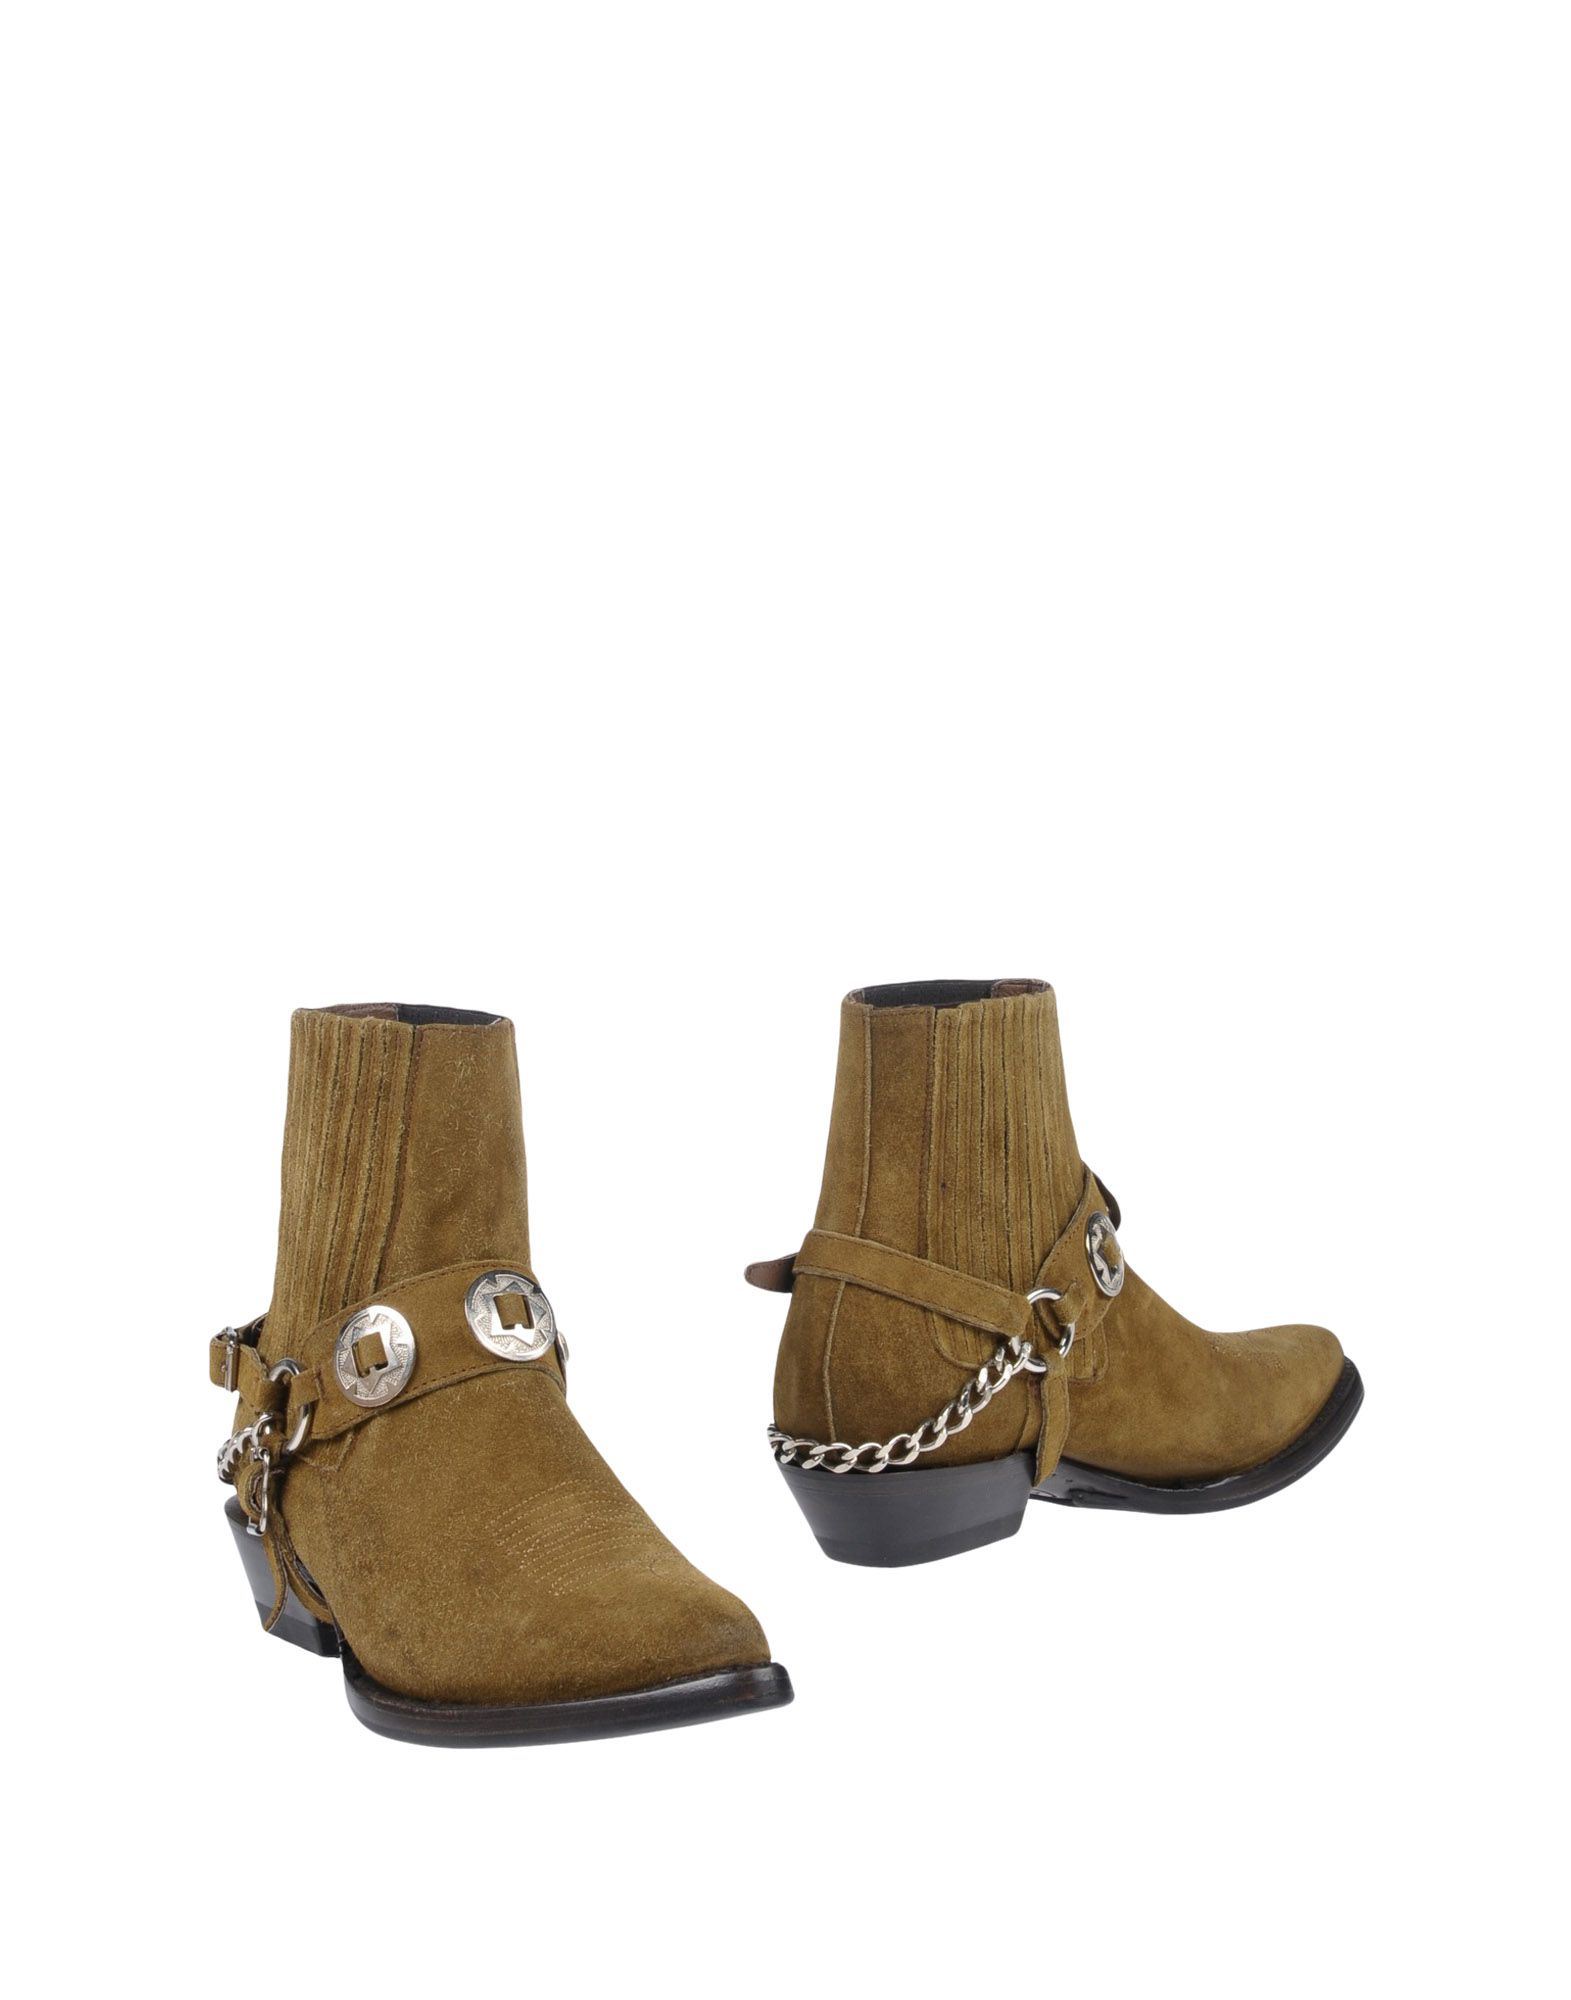 Ash QUICK women's Low Ankle Boots in Huge Surprise For Sale Sale Pay With Visa Buy Cheap Outlet Locations Cheap Discount Sale Outlet Finishline ksA7RutZuw